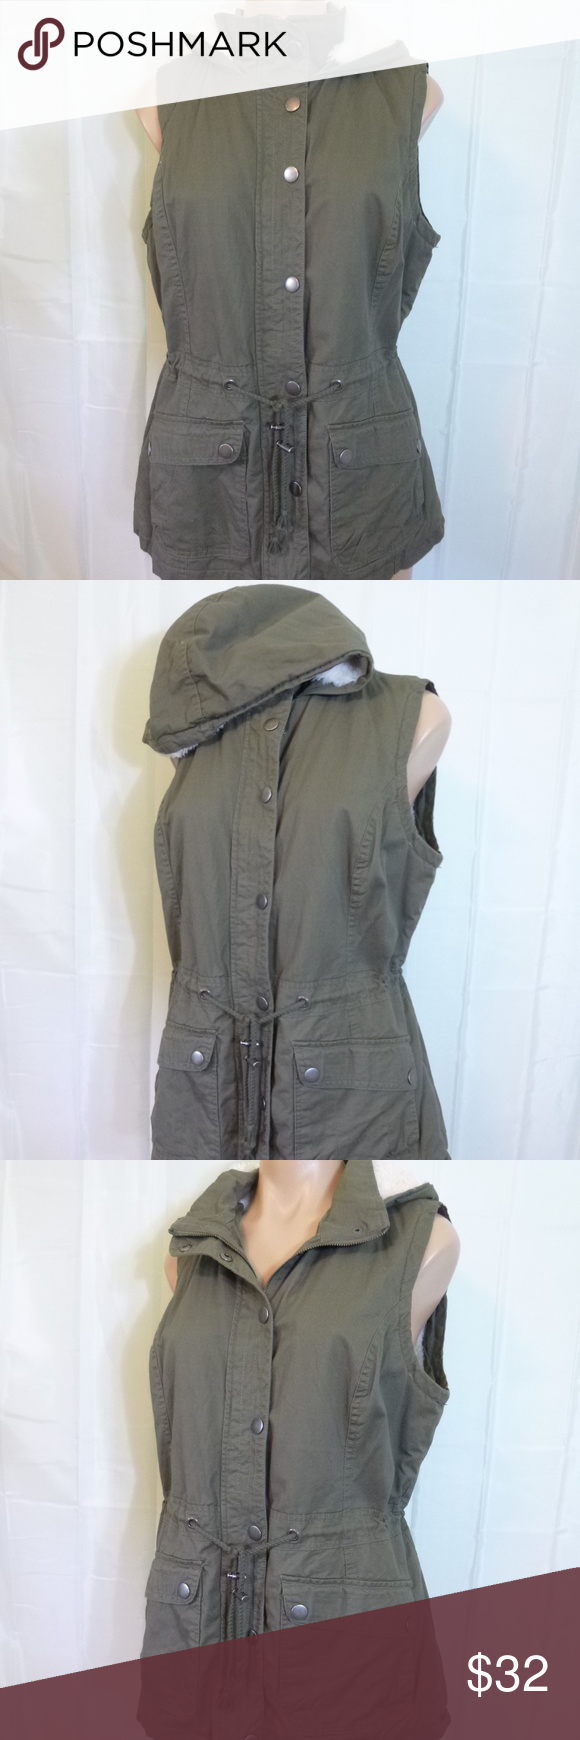 b2df3c418af8e Olive Green Hooded Safari Vest L Sleeveless Jacket NOK NOK olive green sleeveless  jacket vest with an attached hood